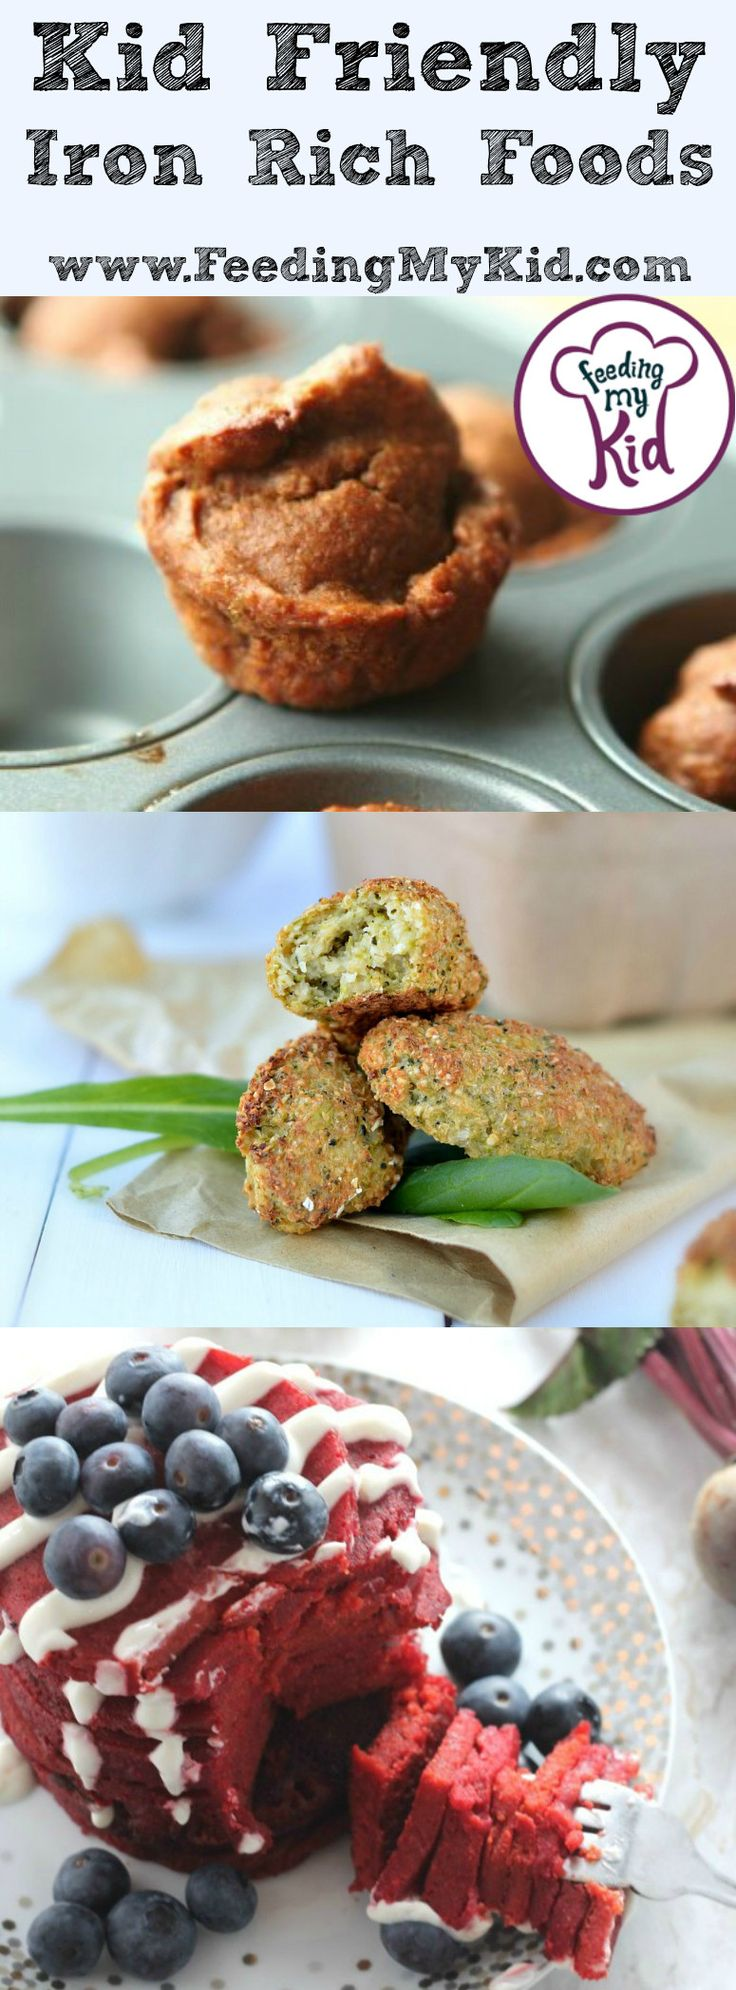 Kid Friendly Iron Rich Foods - You're body needs iron to work properly, but unfortunately sometimes adults and children don't get enough iron in the foods they eat. There are plenty of ways to get the iron you need. Does your kid need a little more iron in his diet? Try these kid friendly iron rich foods! From easy spinach artichoke quiche cups to cream cheese and parmesan asparagus.